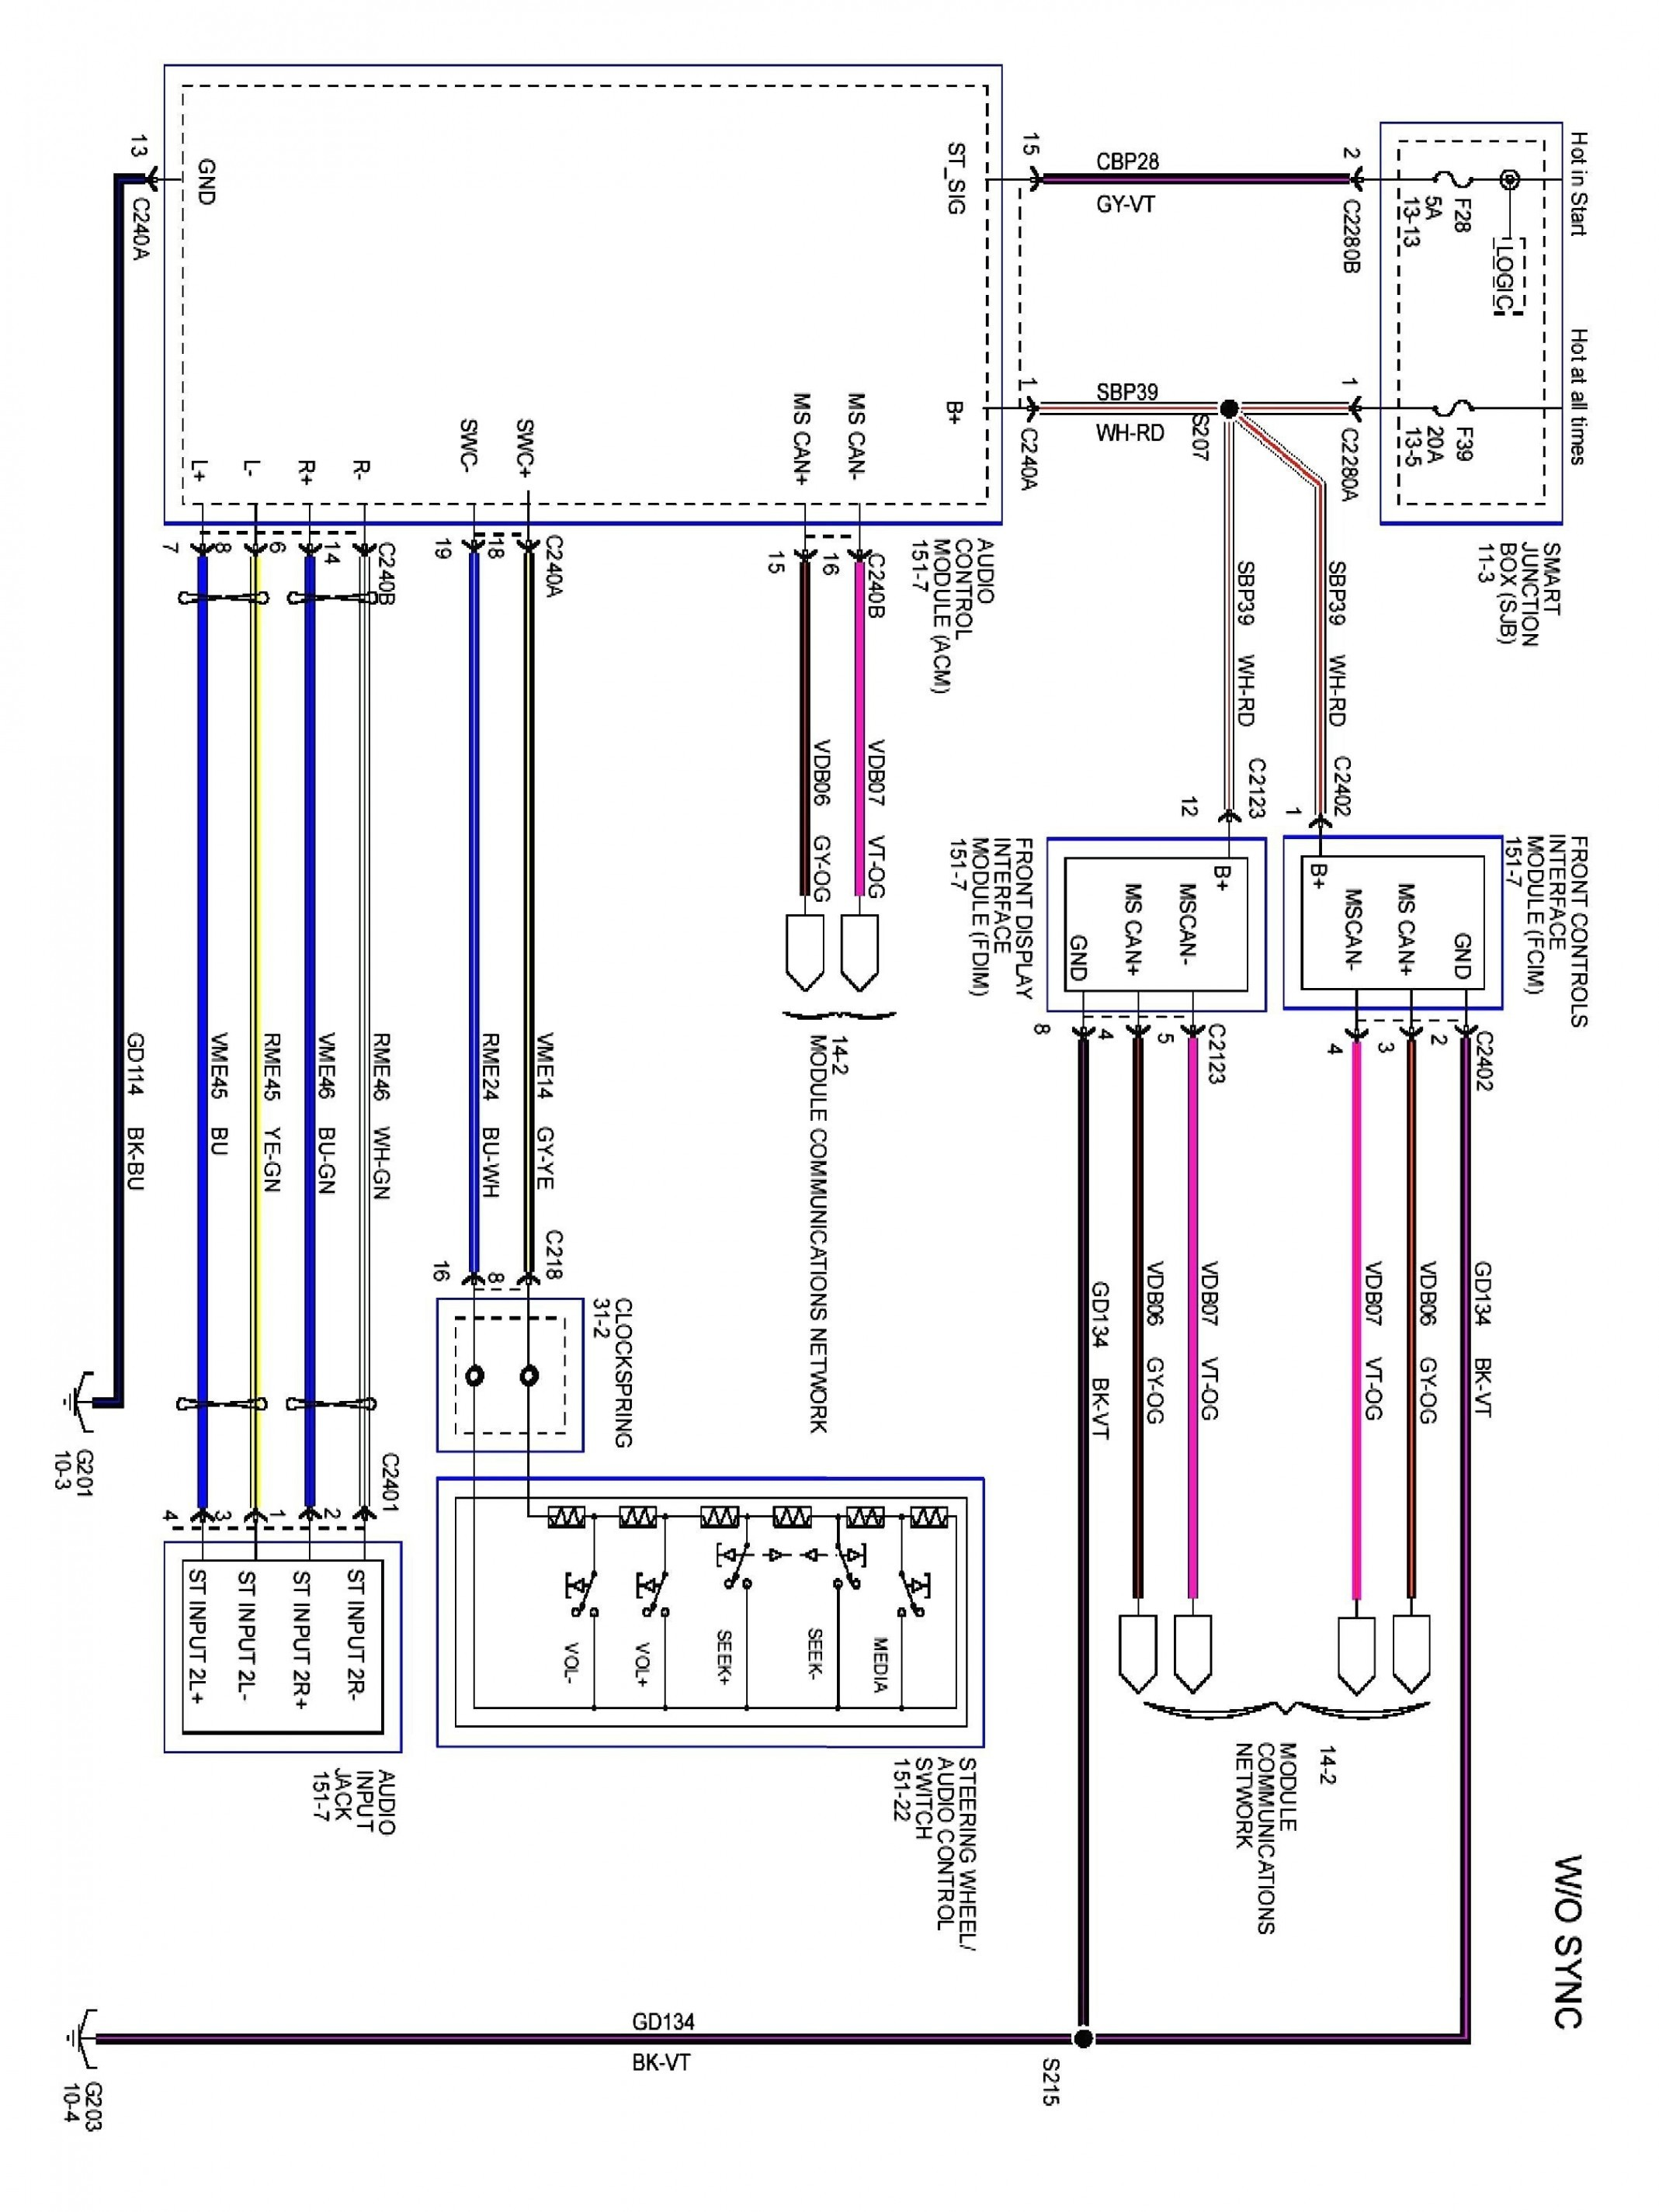 SV_8885] Bmw M3 E46 Wiring Diagrams You Are Viewing E46 M3 Wiring Diagram  Download DiagramAntus Orsal Unde Aeocy Xaem Bedr Isra Mohammedshrine Librar Wiring 101